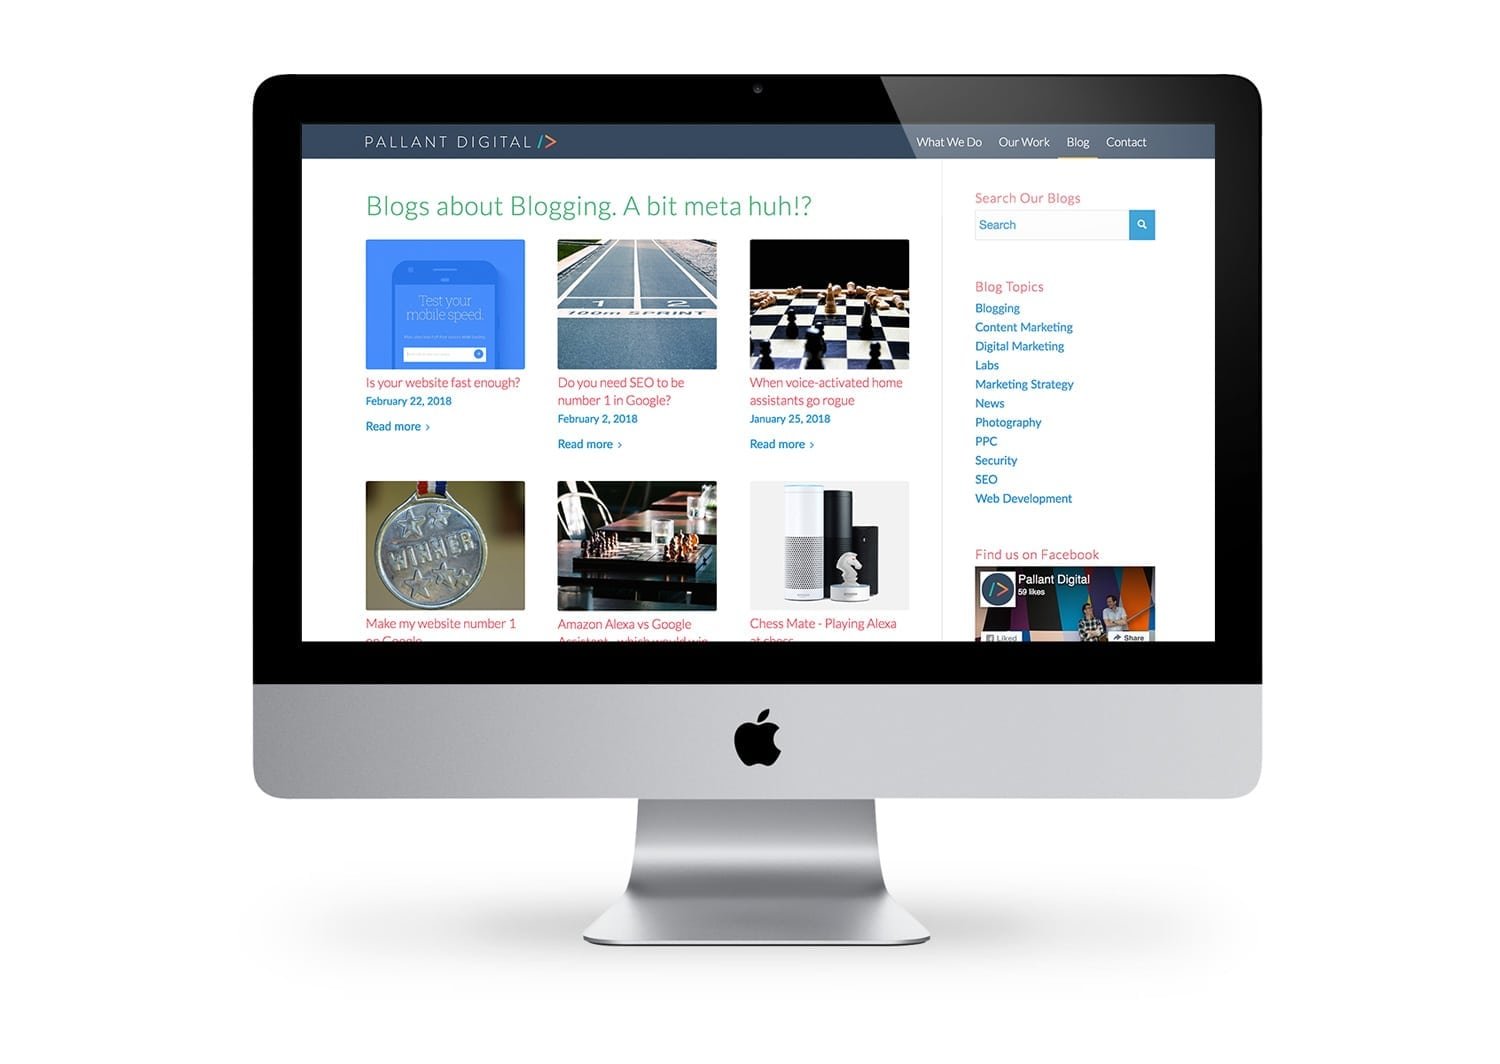 A website page showing content marketing via a blog